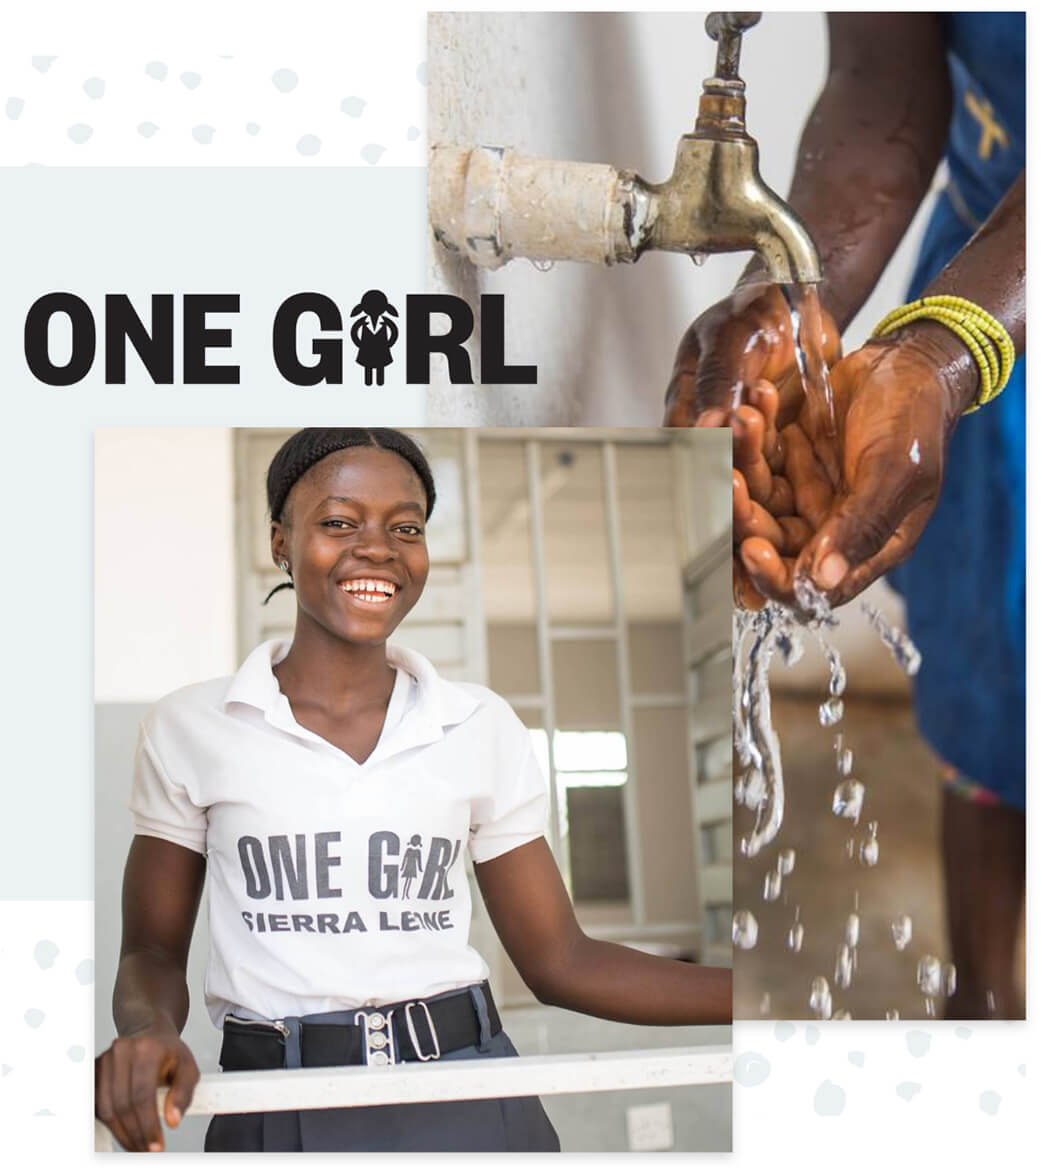 One Girl logo and photos of hands being washed and a girl smiling